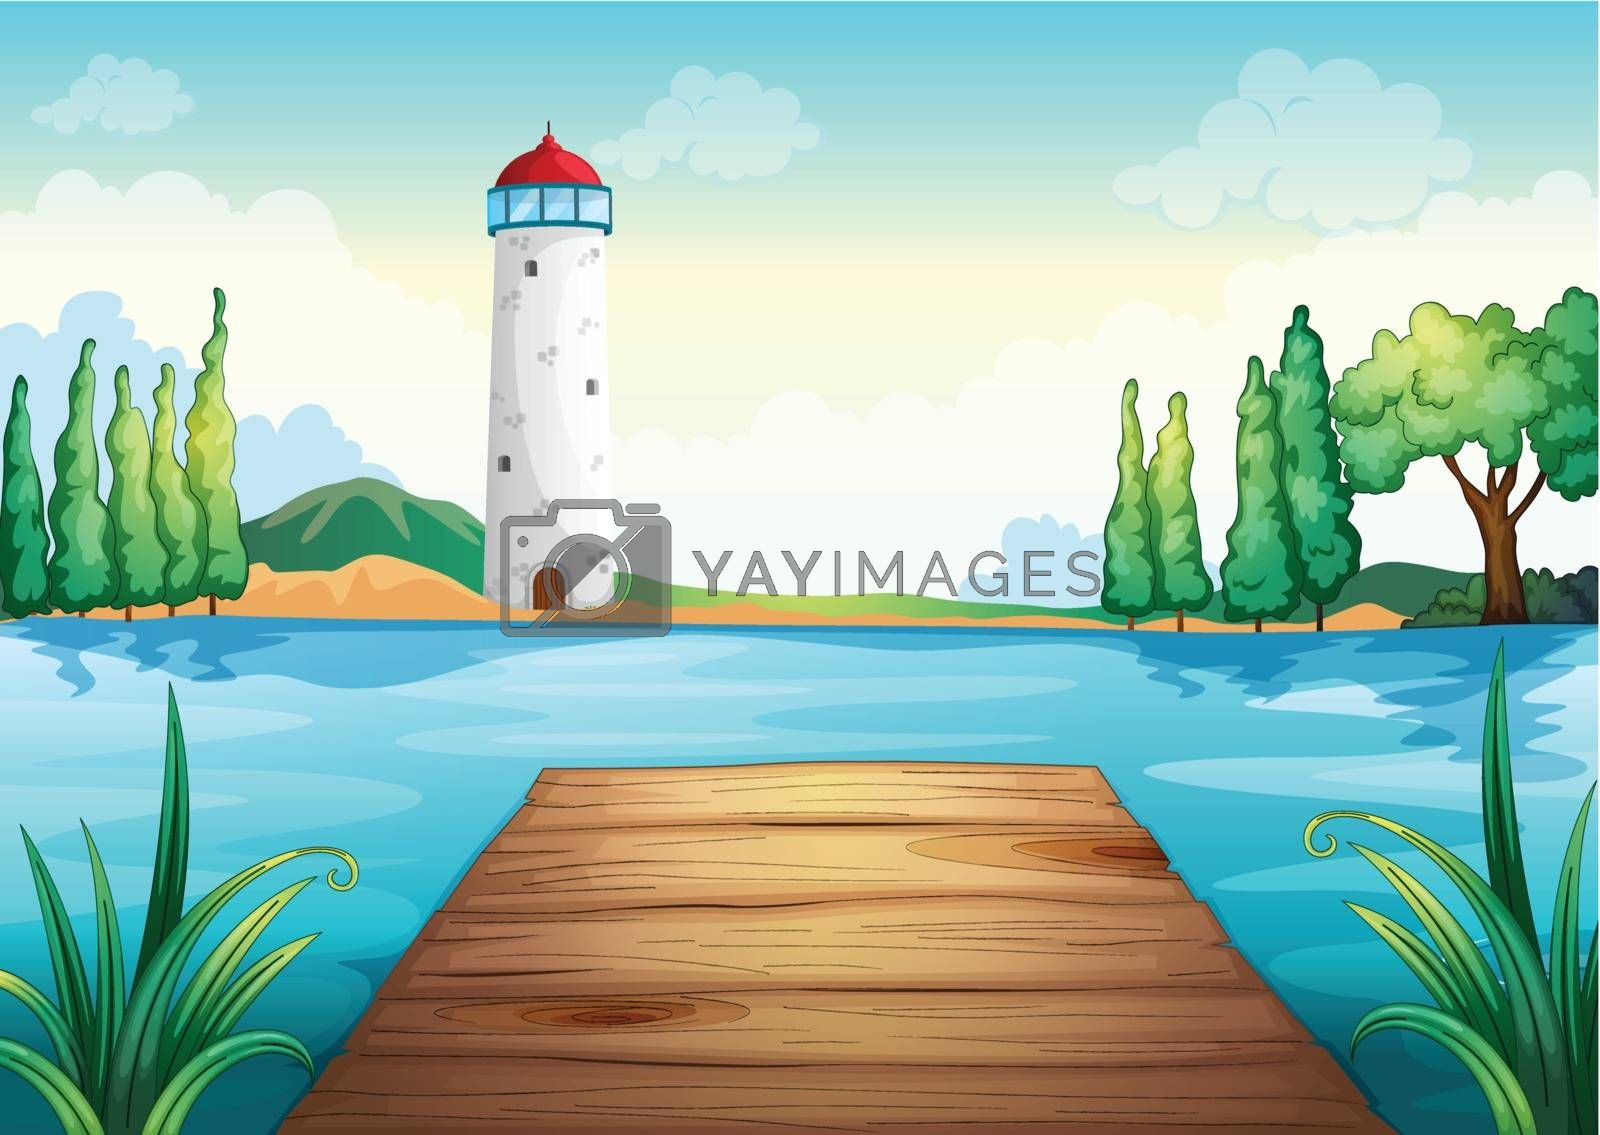 illustration of a light house and wooden bench